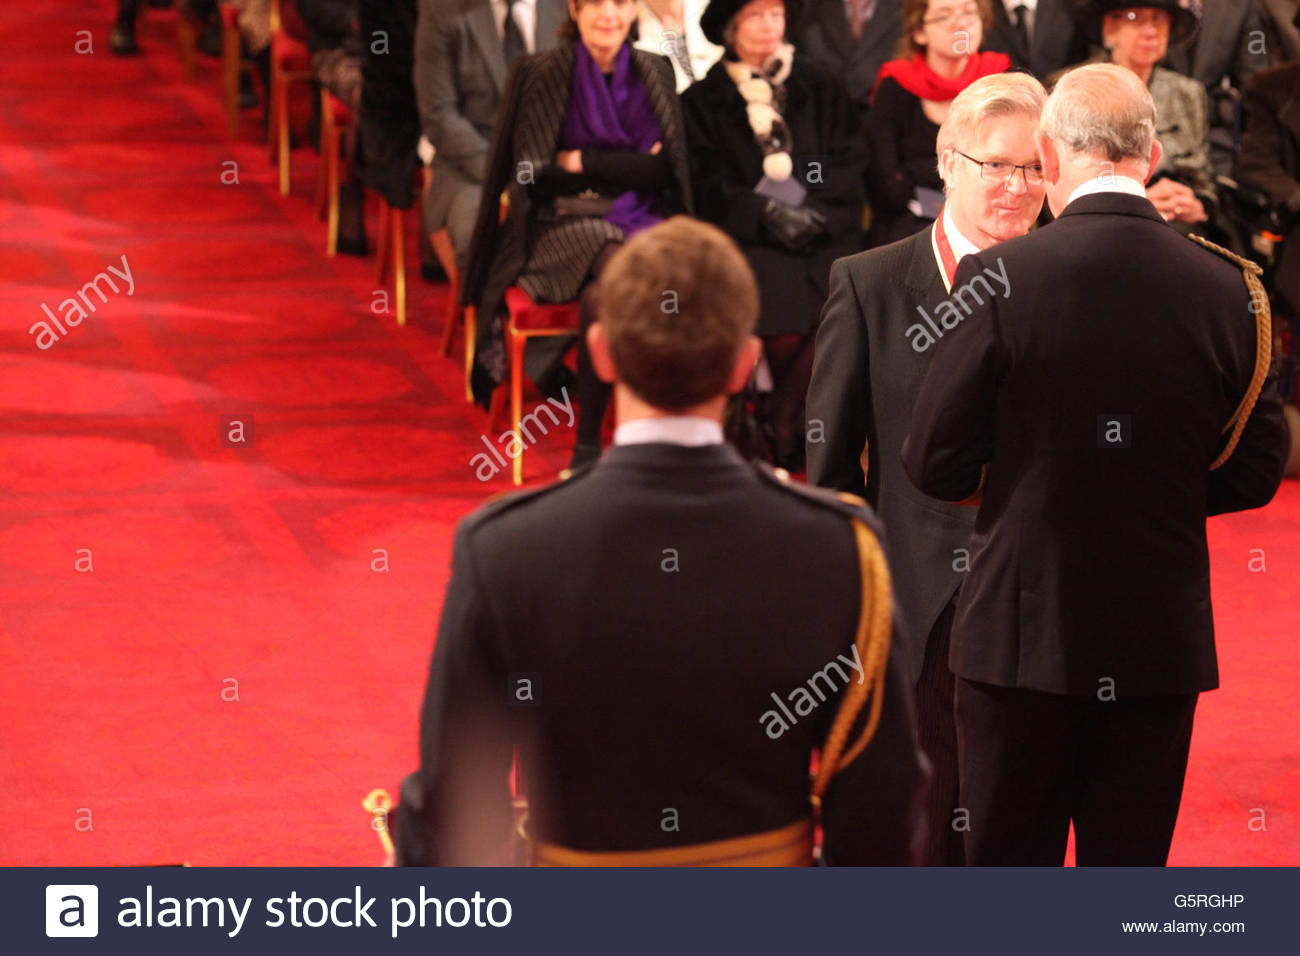 Investitures at Buckingham Palace Stock Photo